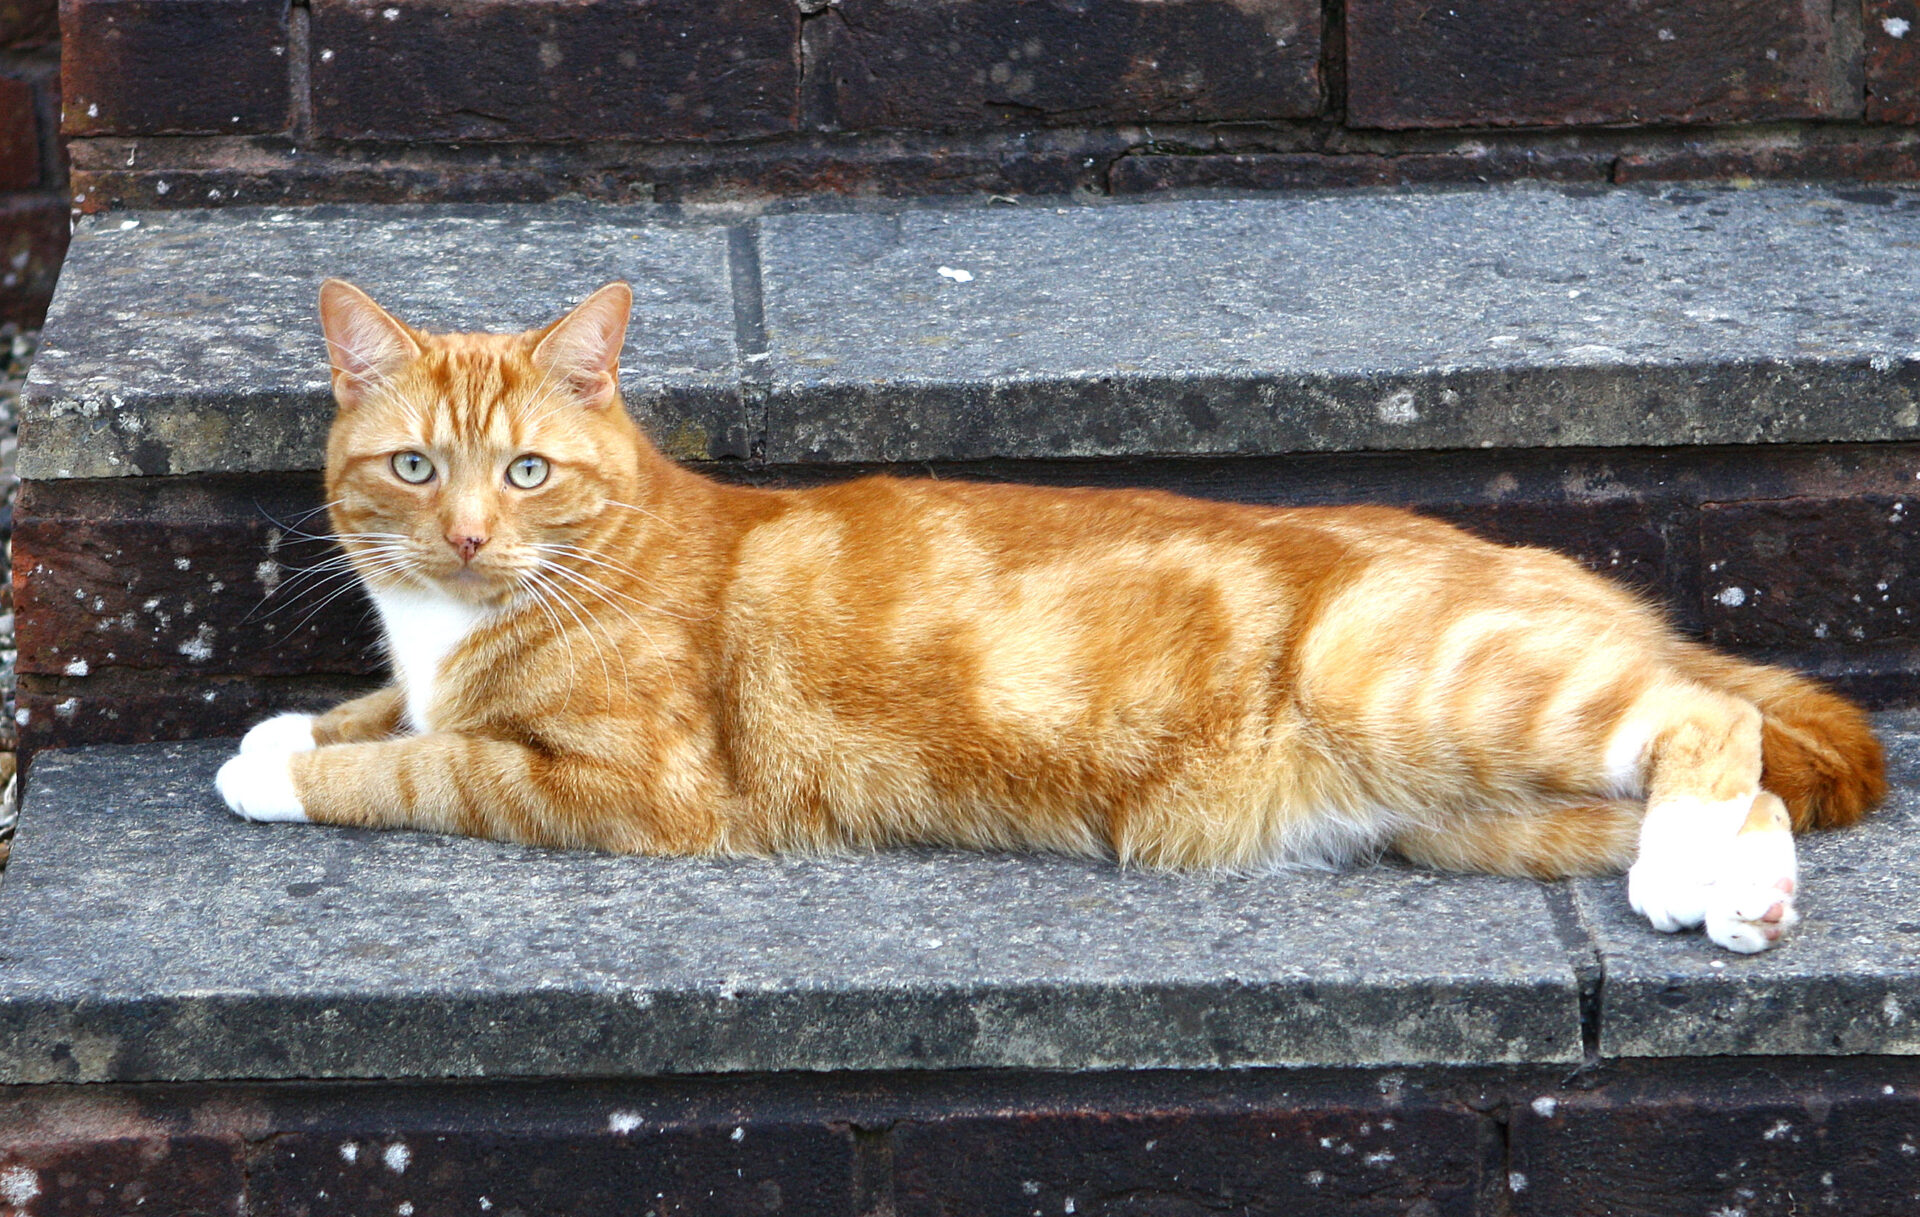 Although they are both reclining on a paving slab at Digby, this and the next photo, are not the same cat.